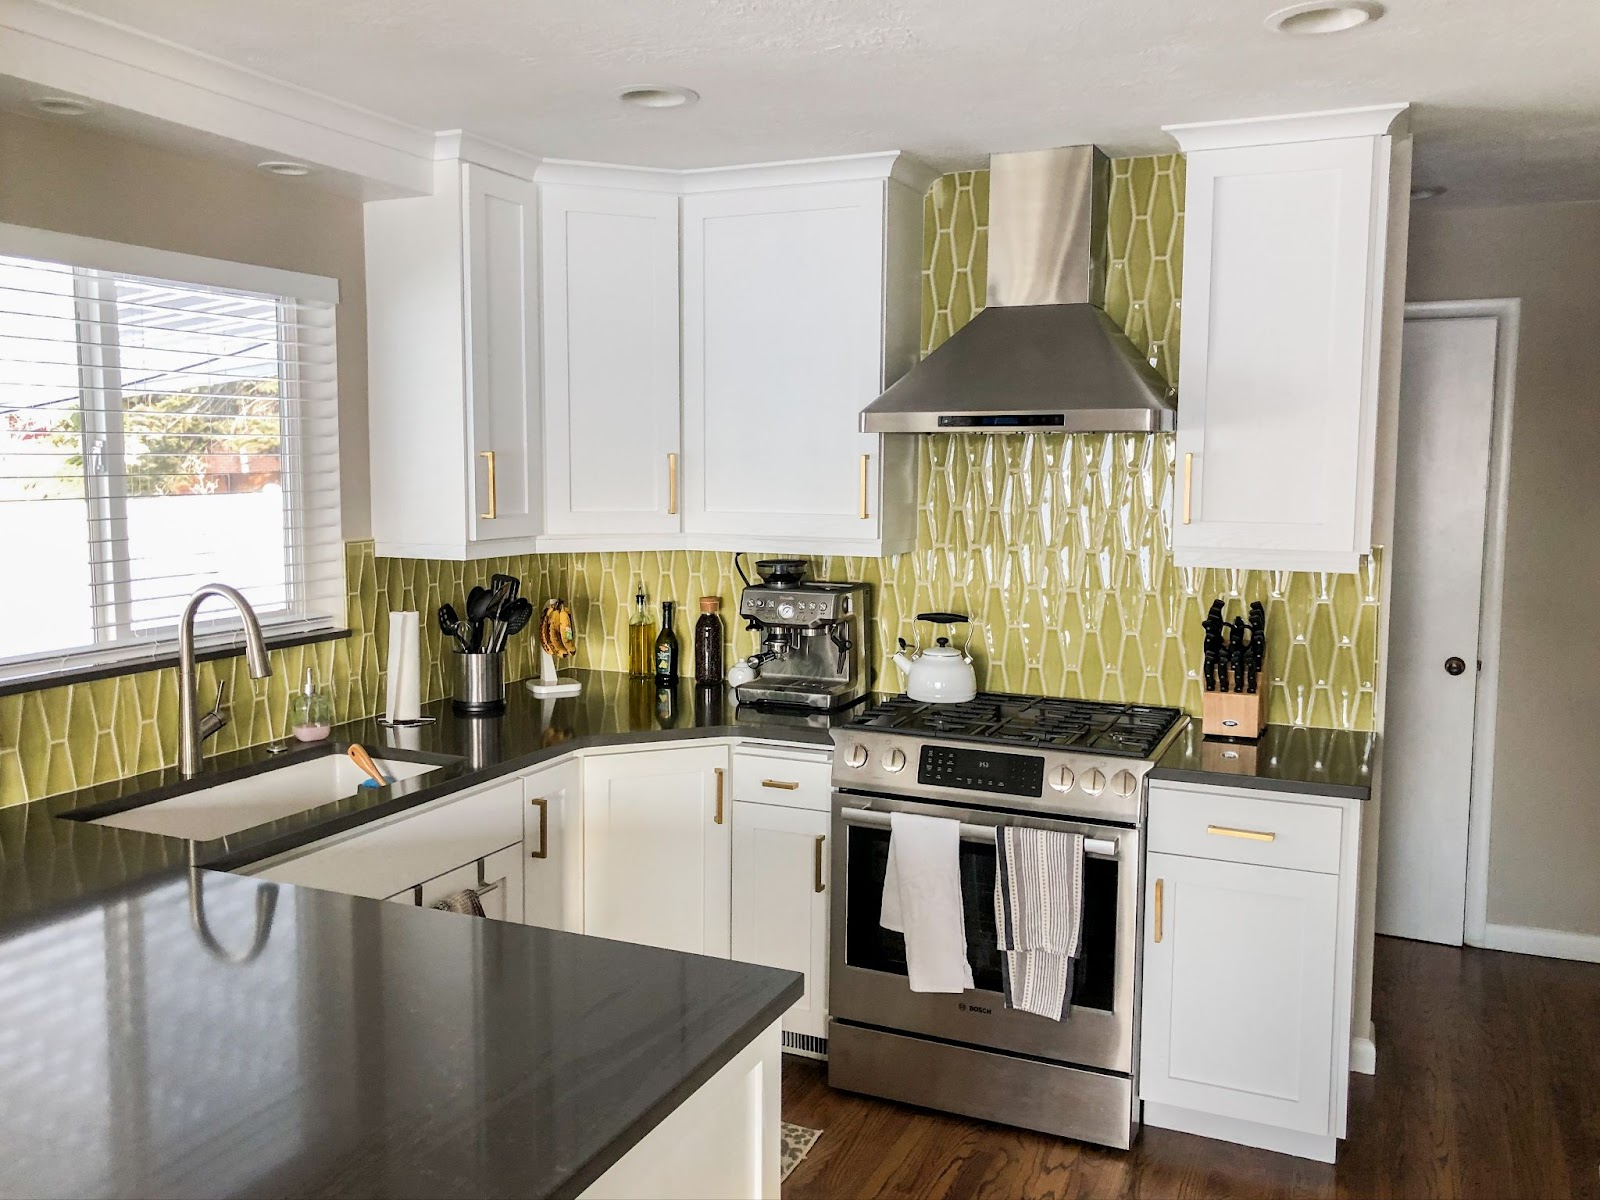 5 Small Kitchen Design Ideas For Your Mountain Home